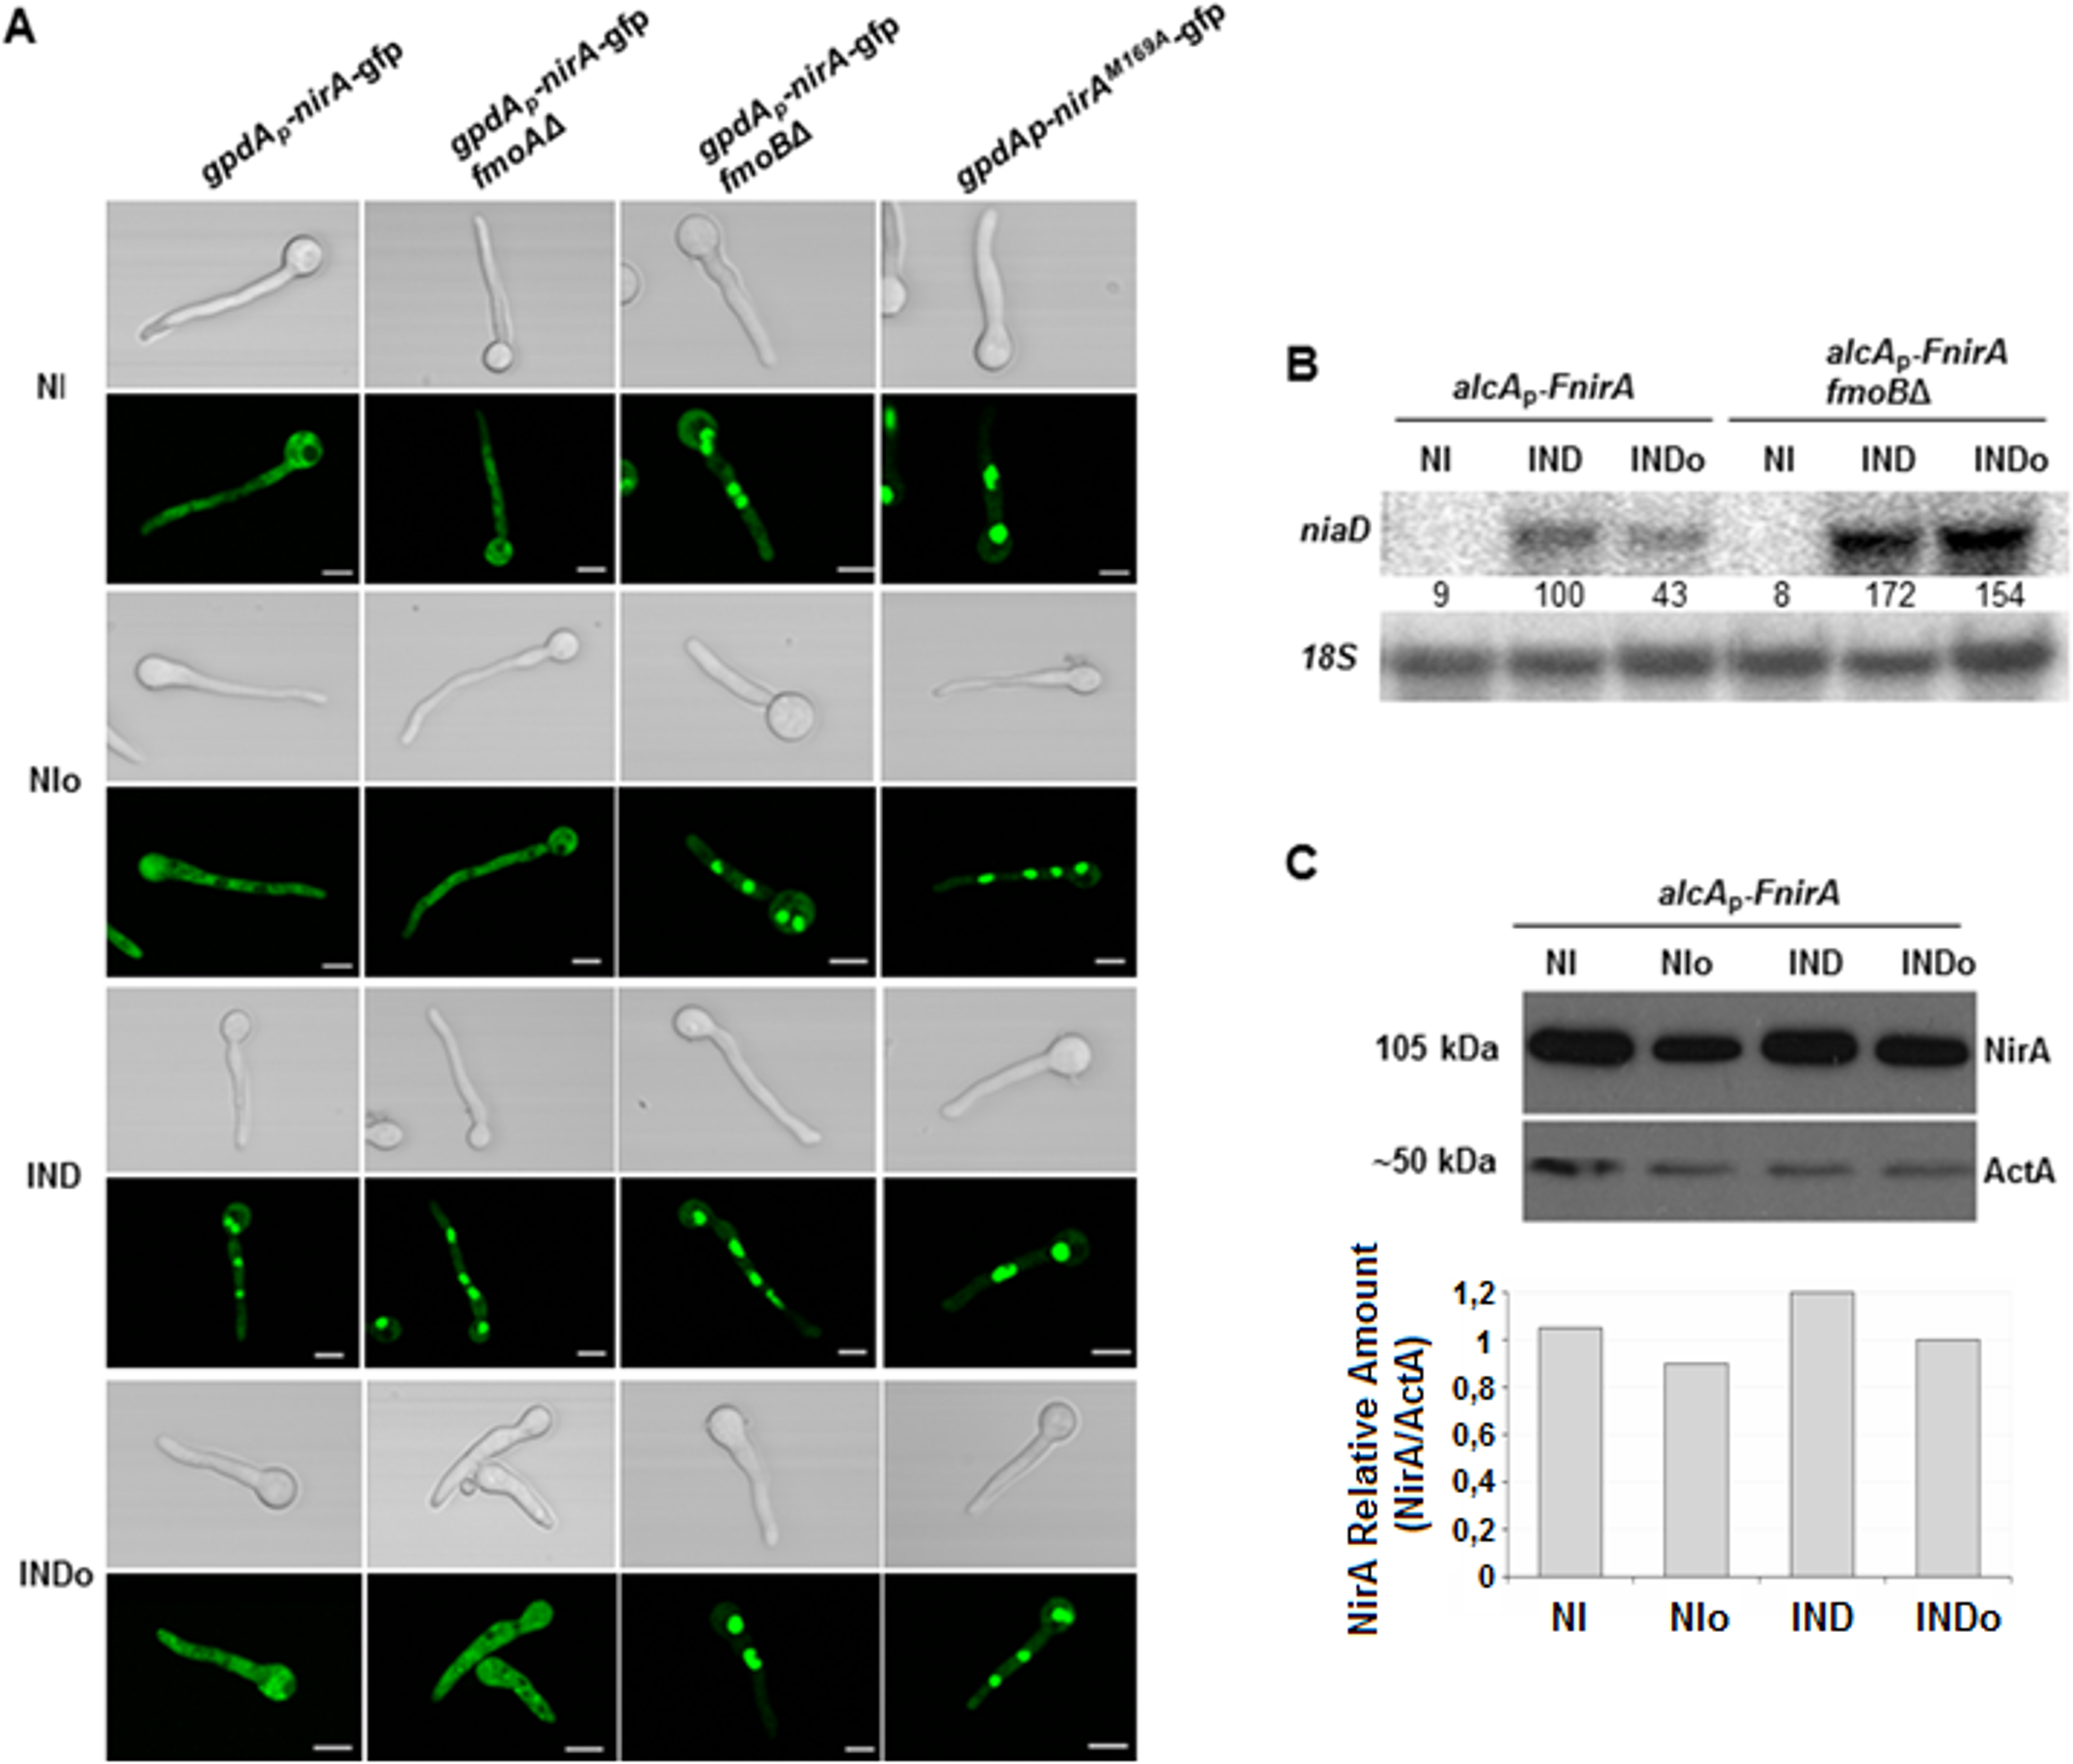 Methionine oxidation in the NirA-NES defines subcellular localization and activity.